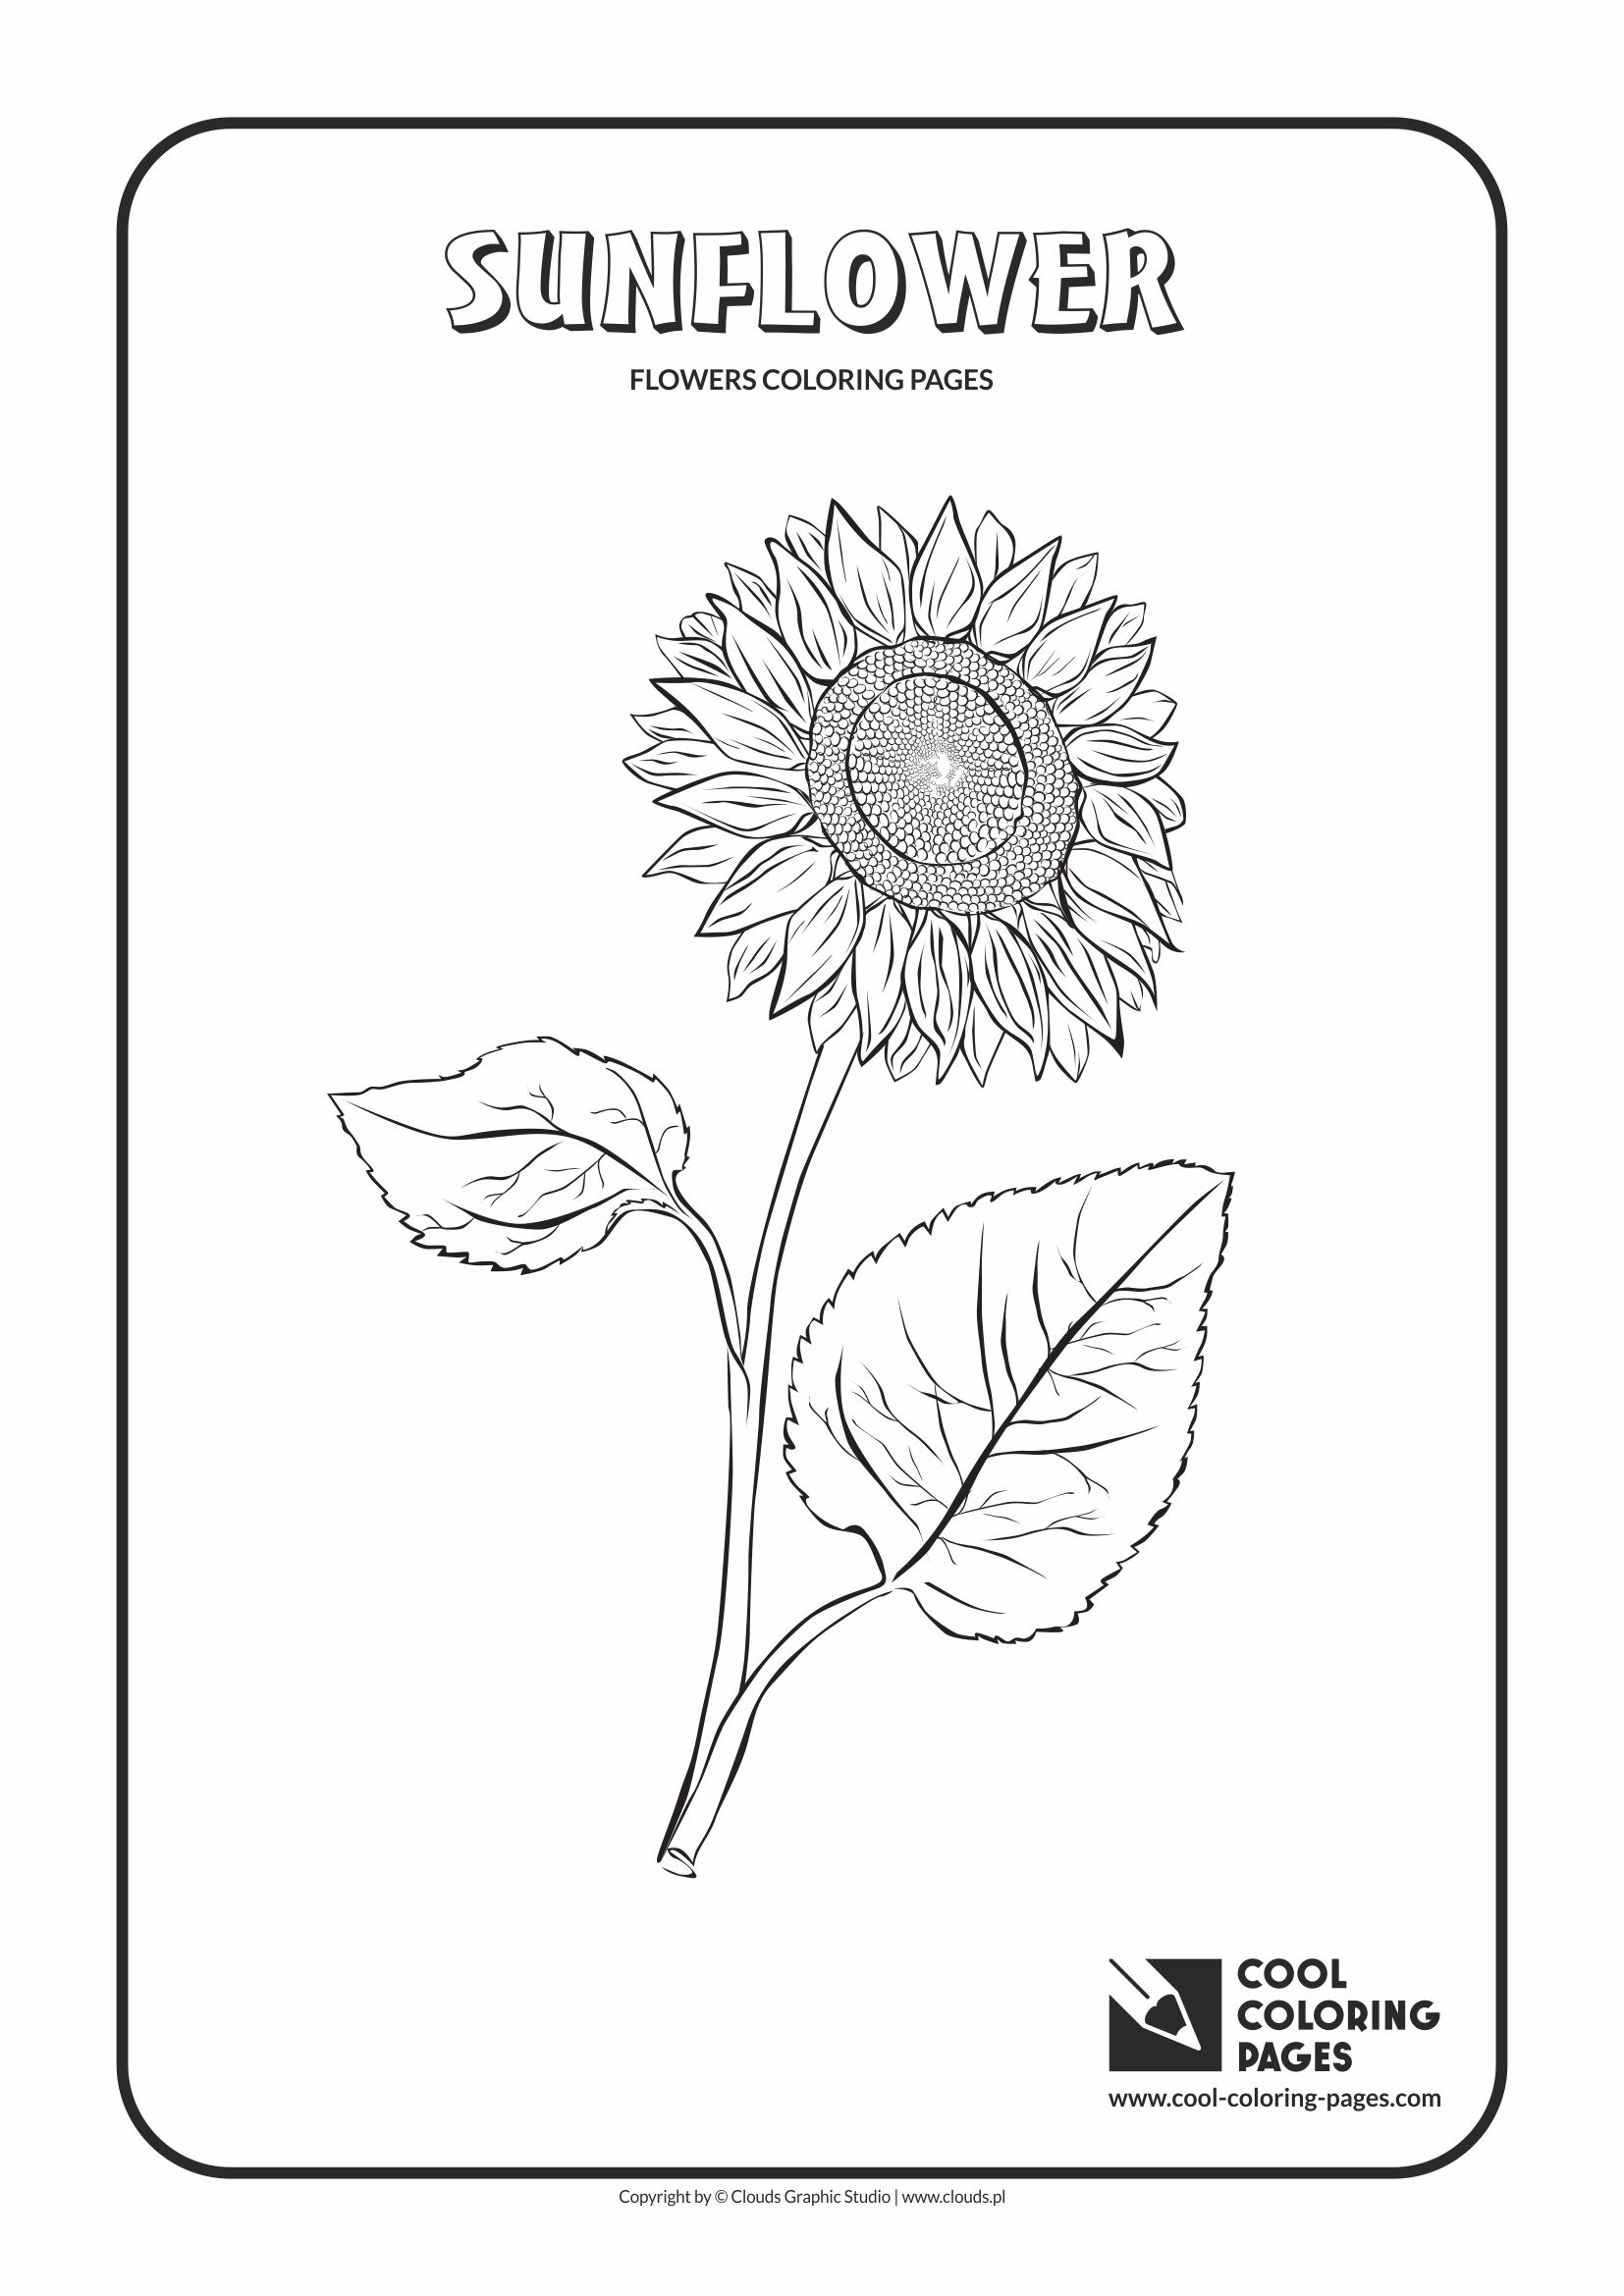 Cool Coloring Pages Sunflower Coloring Page